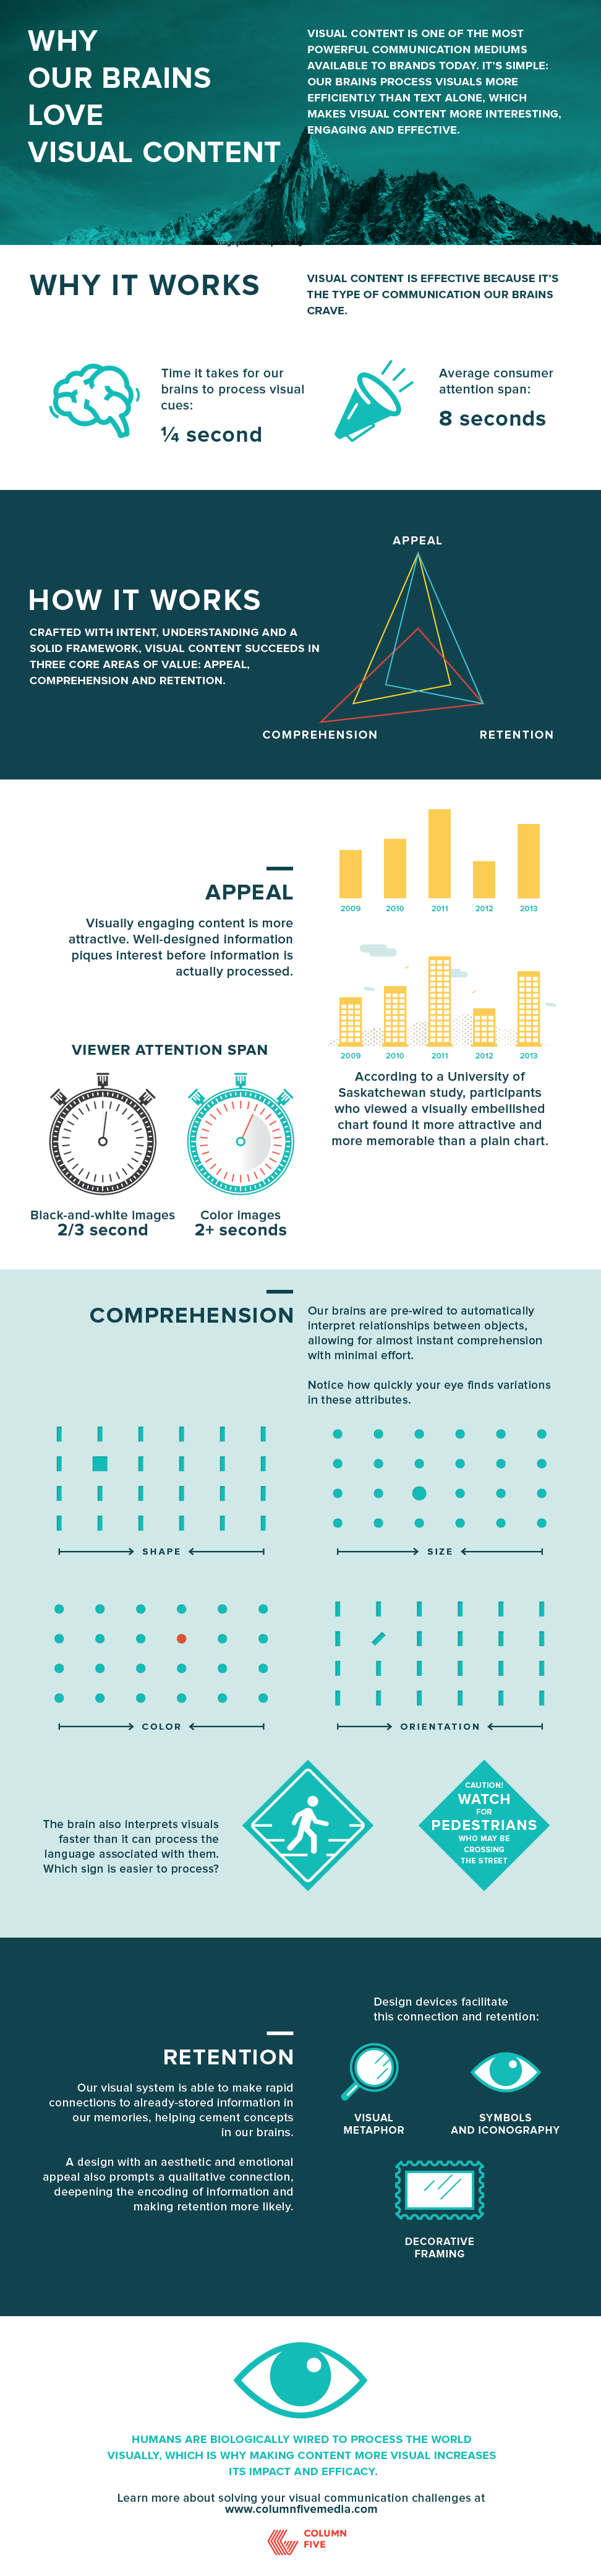 Why Your Brain Loves Visual Content [Infographic]